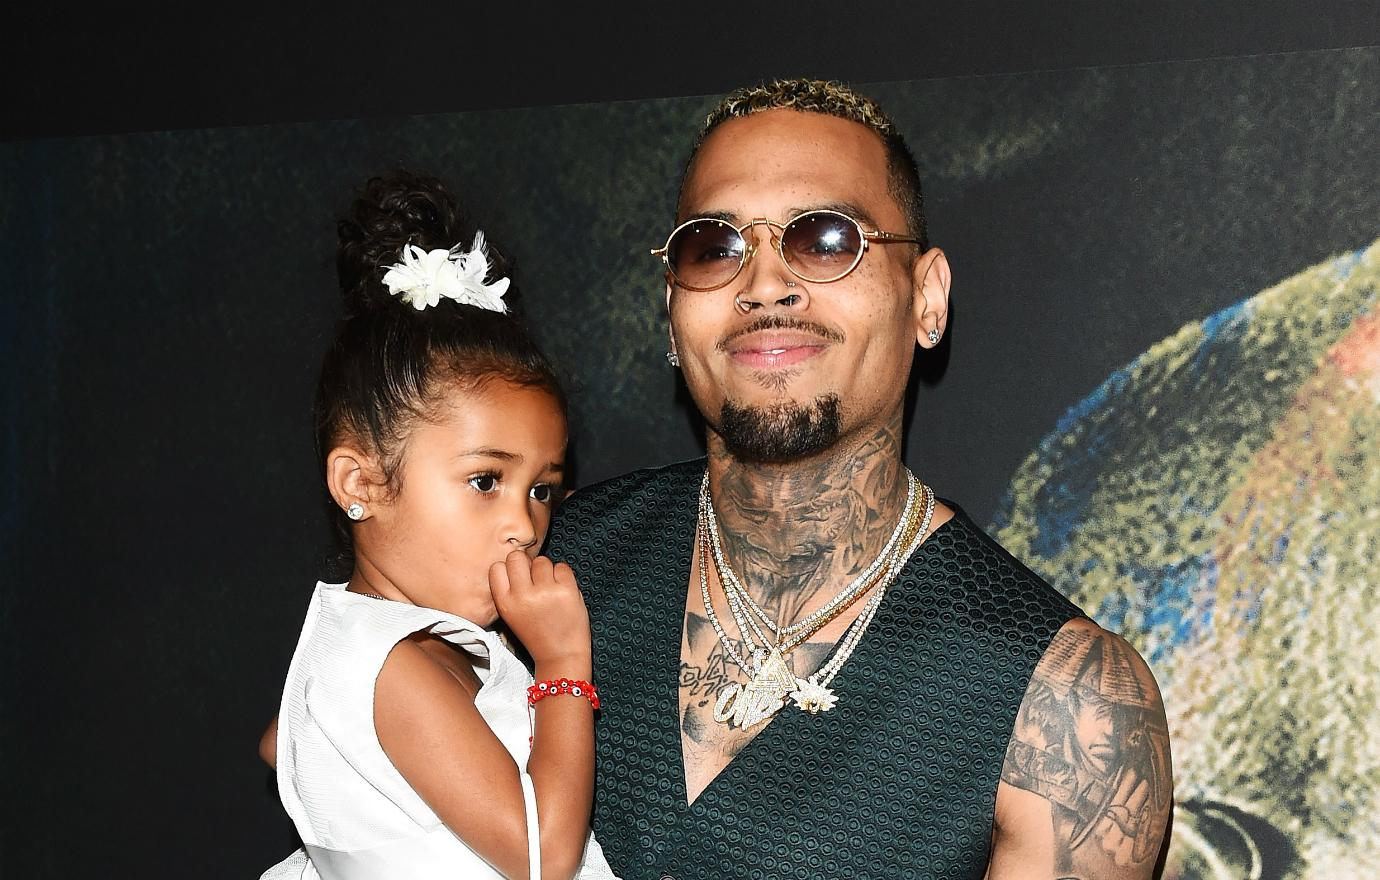 Chris Brown kept his daughter, Royalty, a secret for some time. But now, he is everywhere with her.